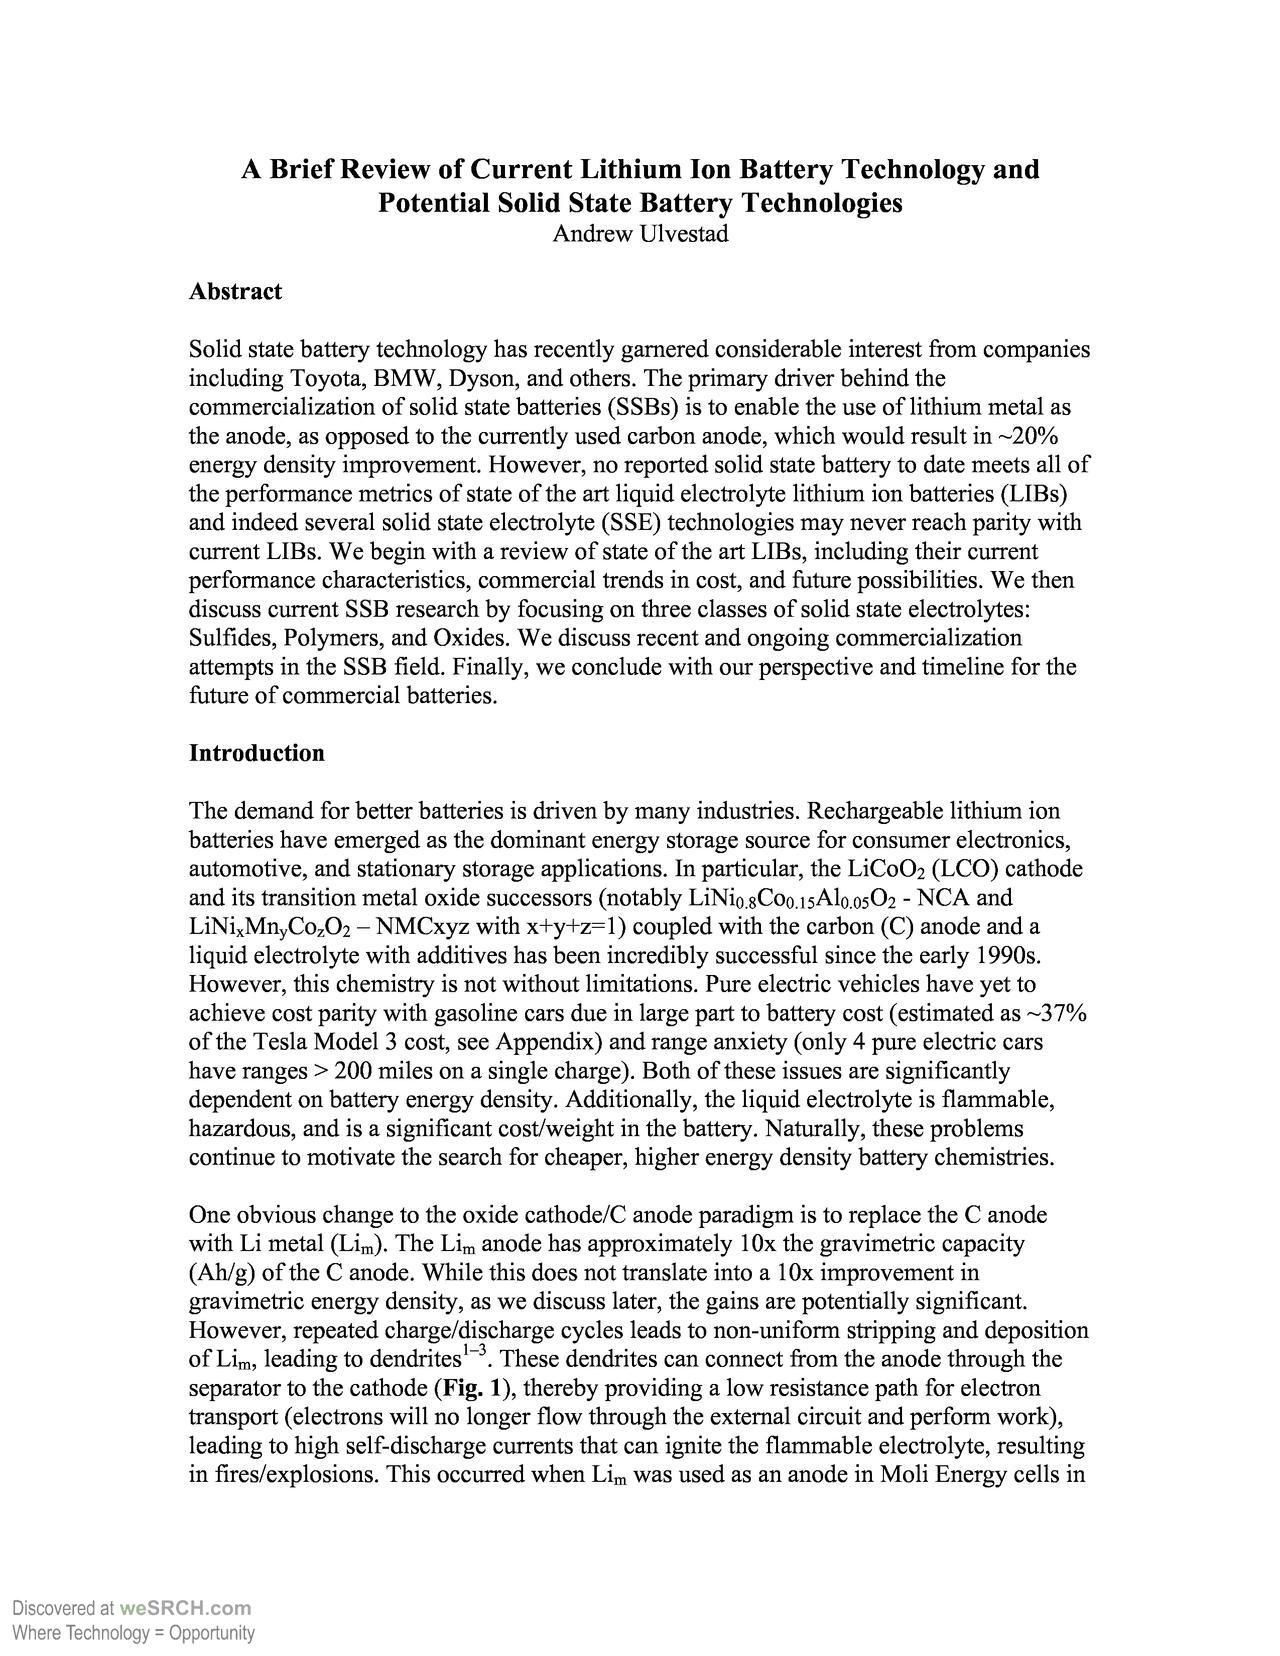 Current Lithium Ion Battery Technology and Potential Solid